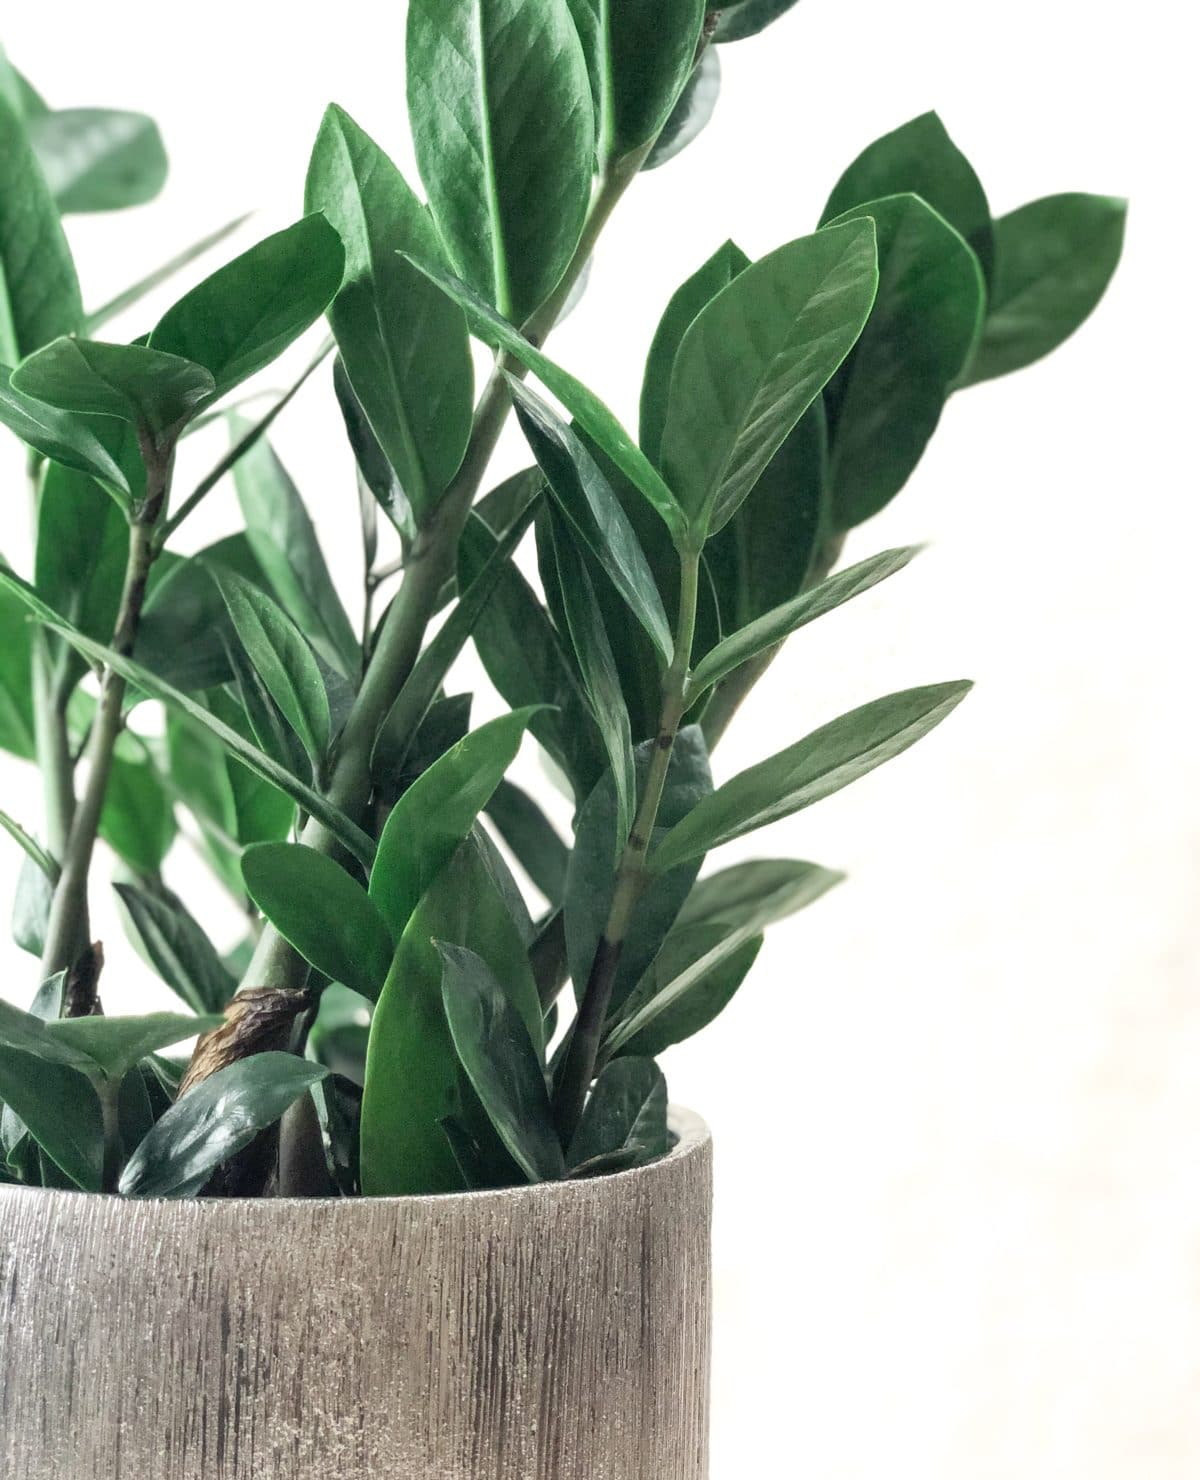 Learn how to care for an indoor ZZ plant.